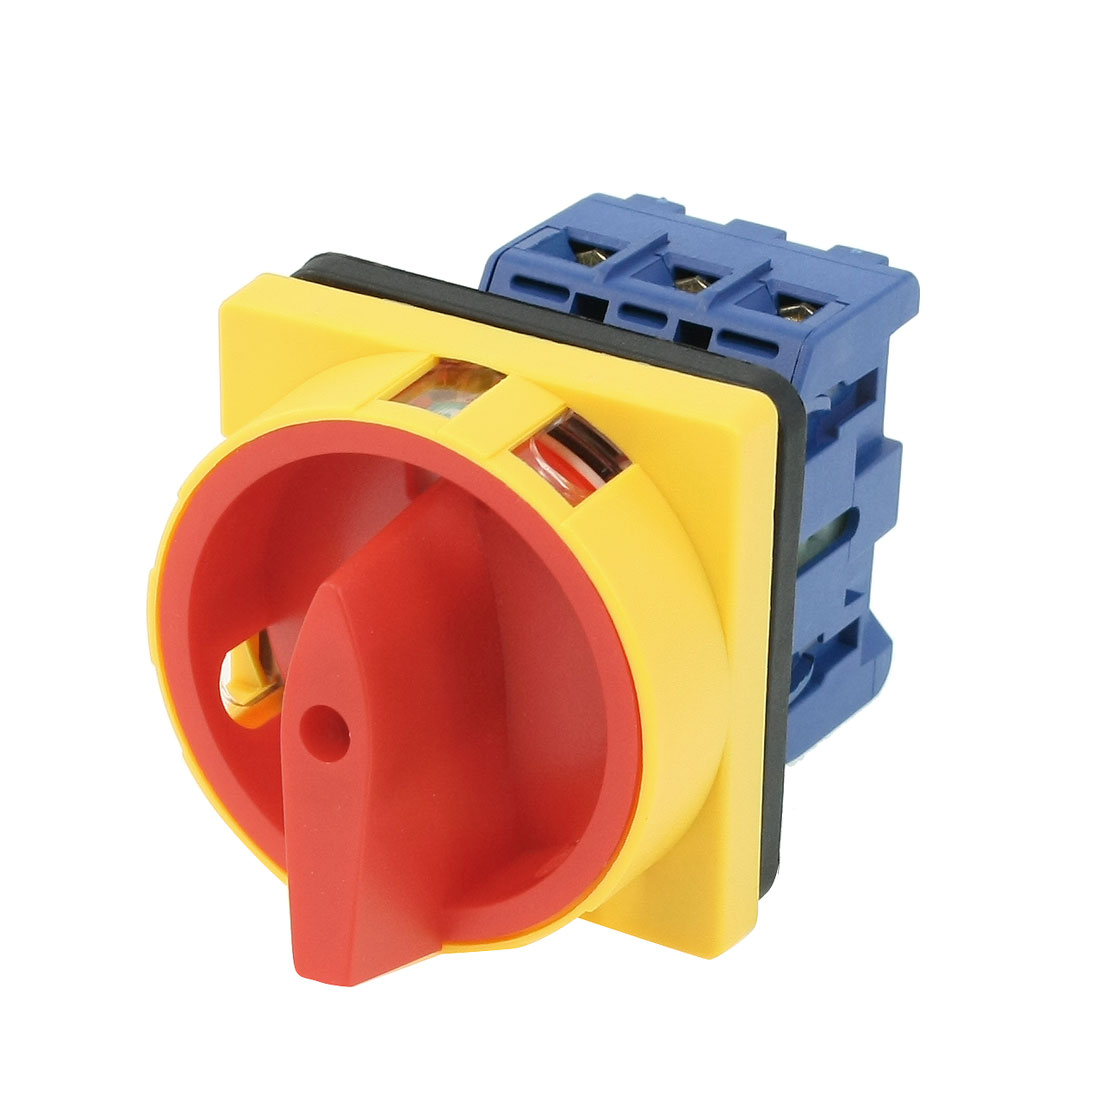 Ui AC 660V Ith 25A 6 Screw Terminals ON/OFF Rotary Combination Switch